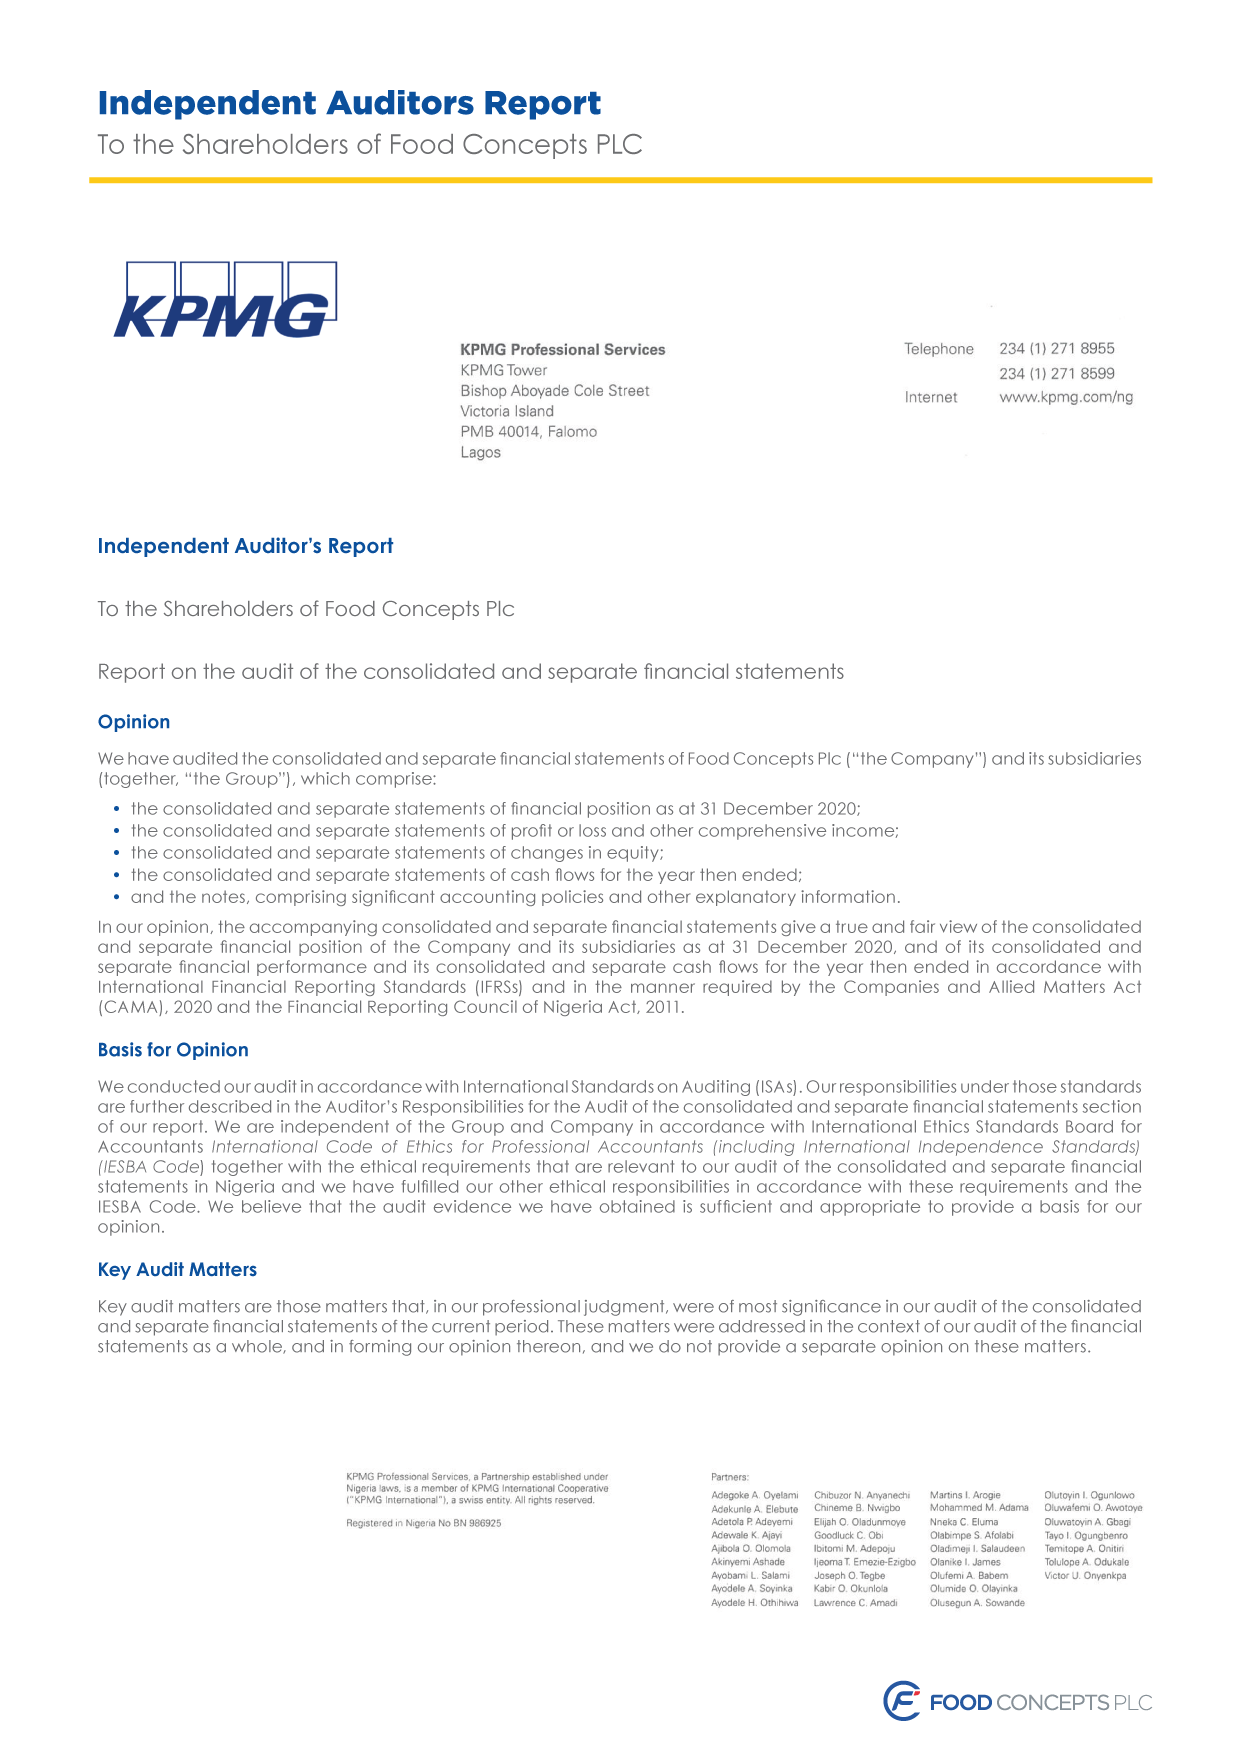 Food Concepts - Independent Auditors Report - Page 1